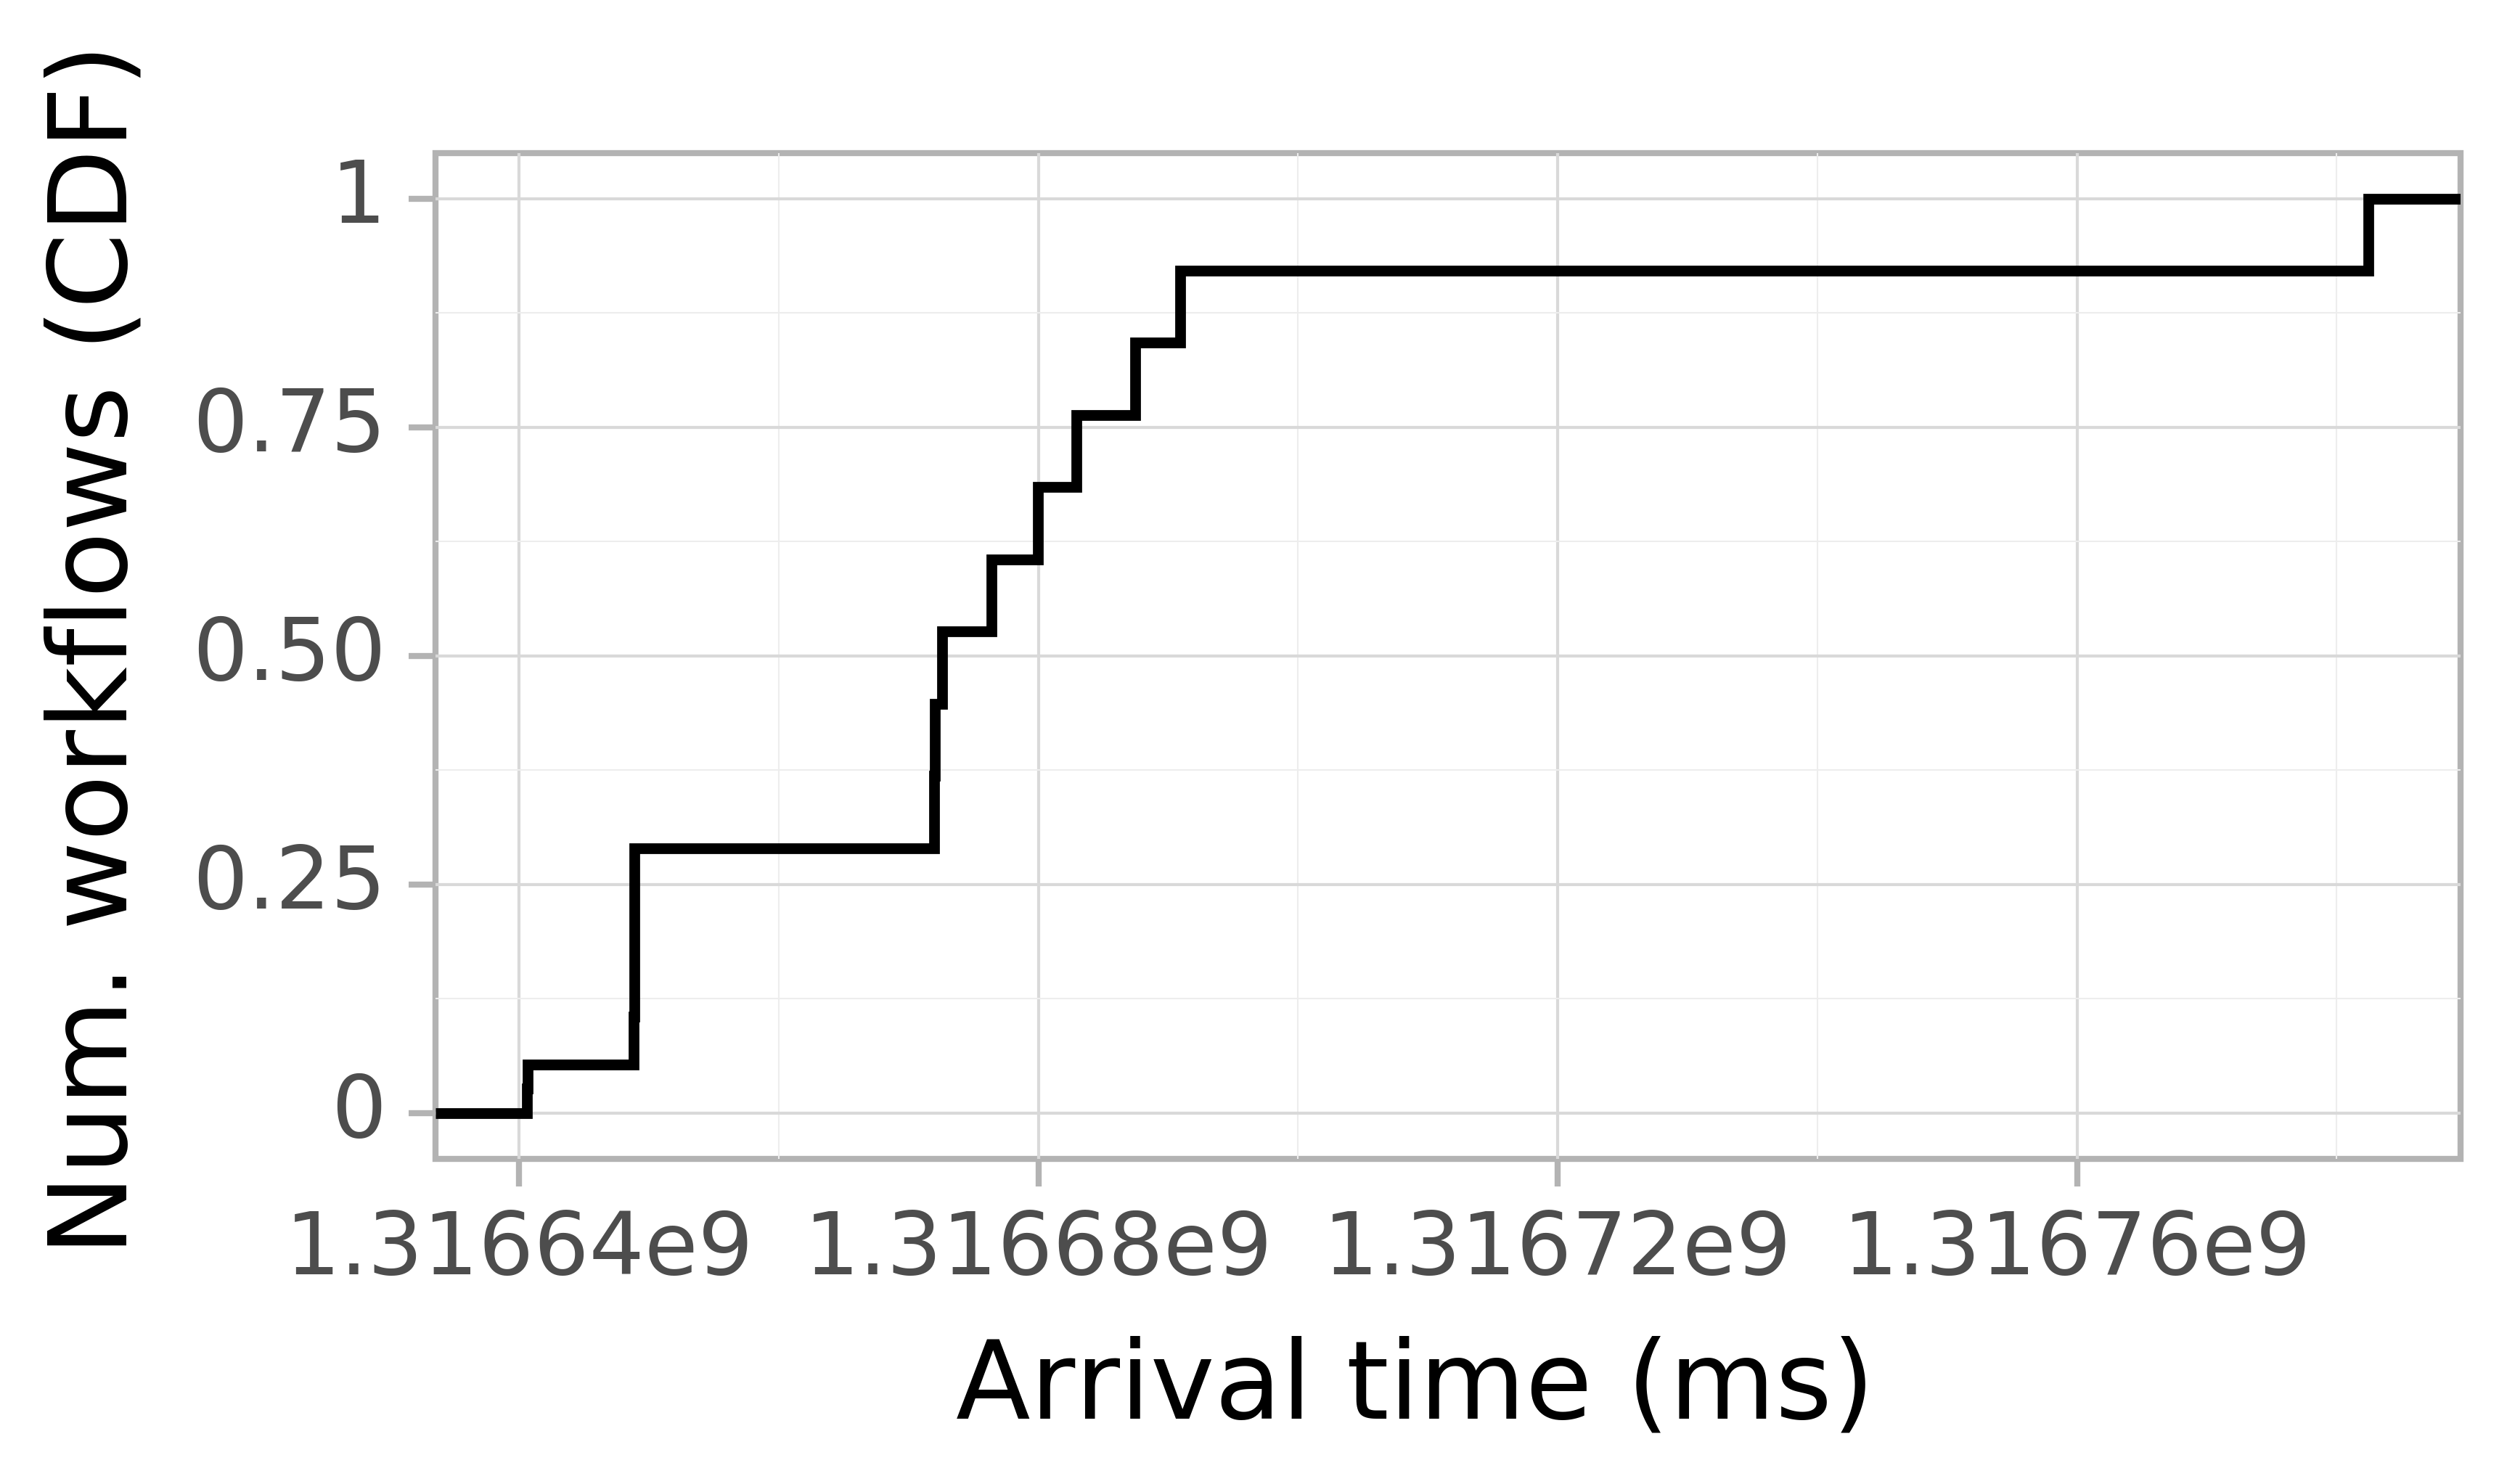 Job arrival CDF graph for the Pegasus_P7 trace.